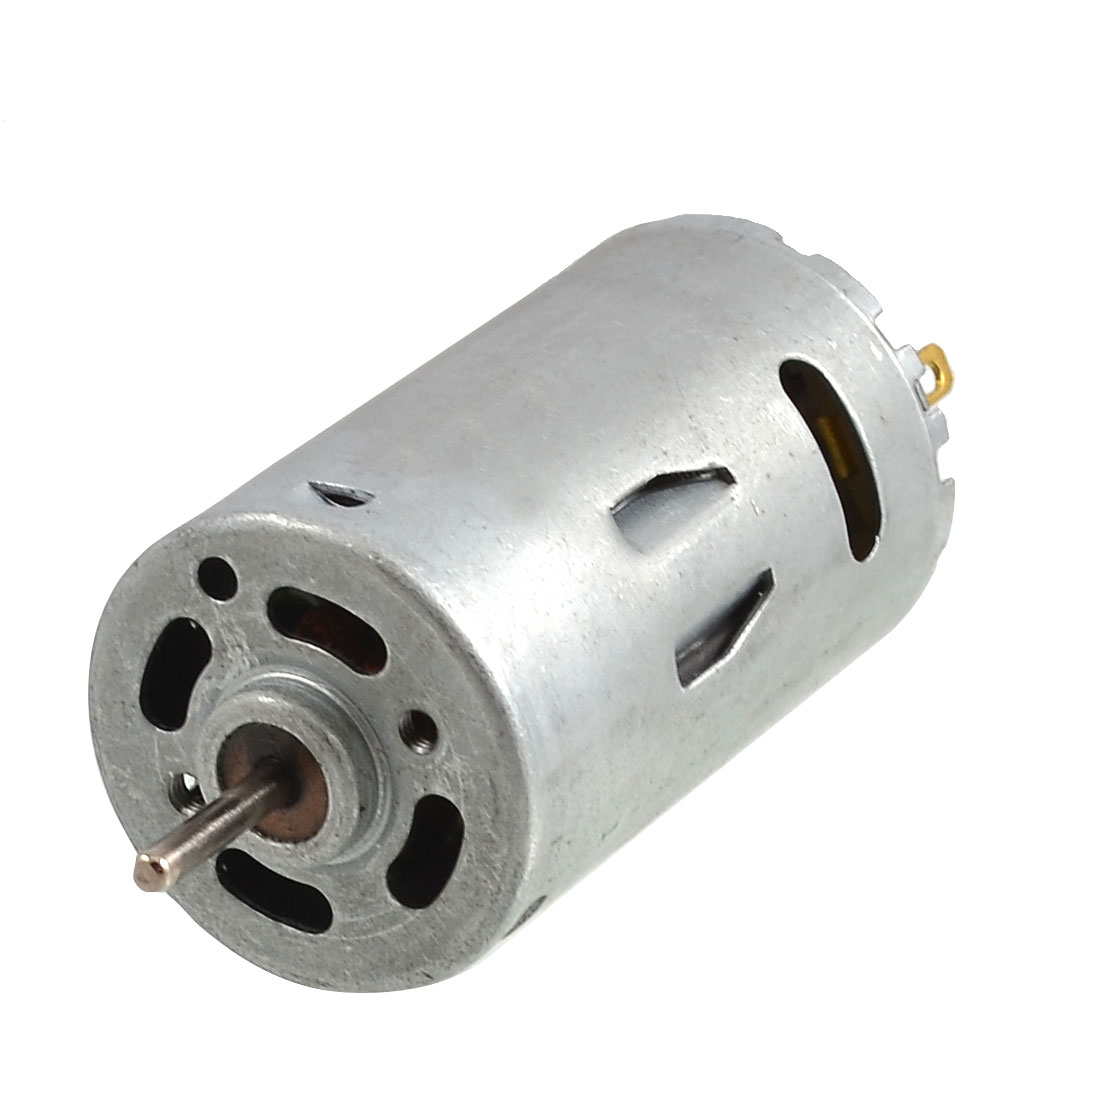 Home Appliances DC 12V 0.25A 2.3W 5000RPM Magnetic Mini Motor